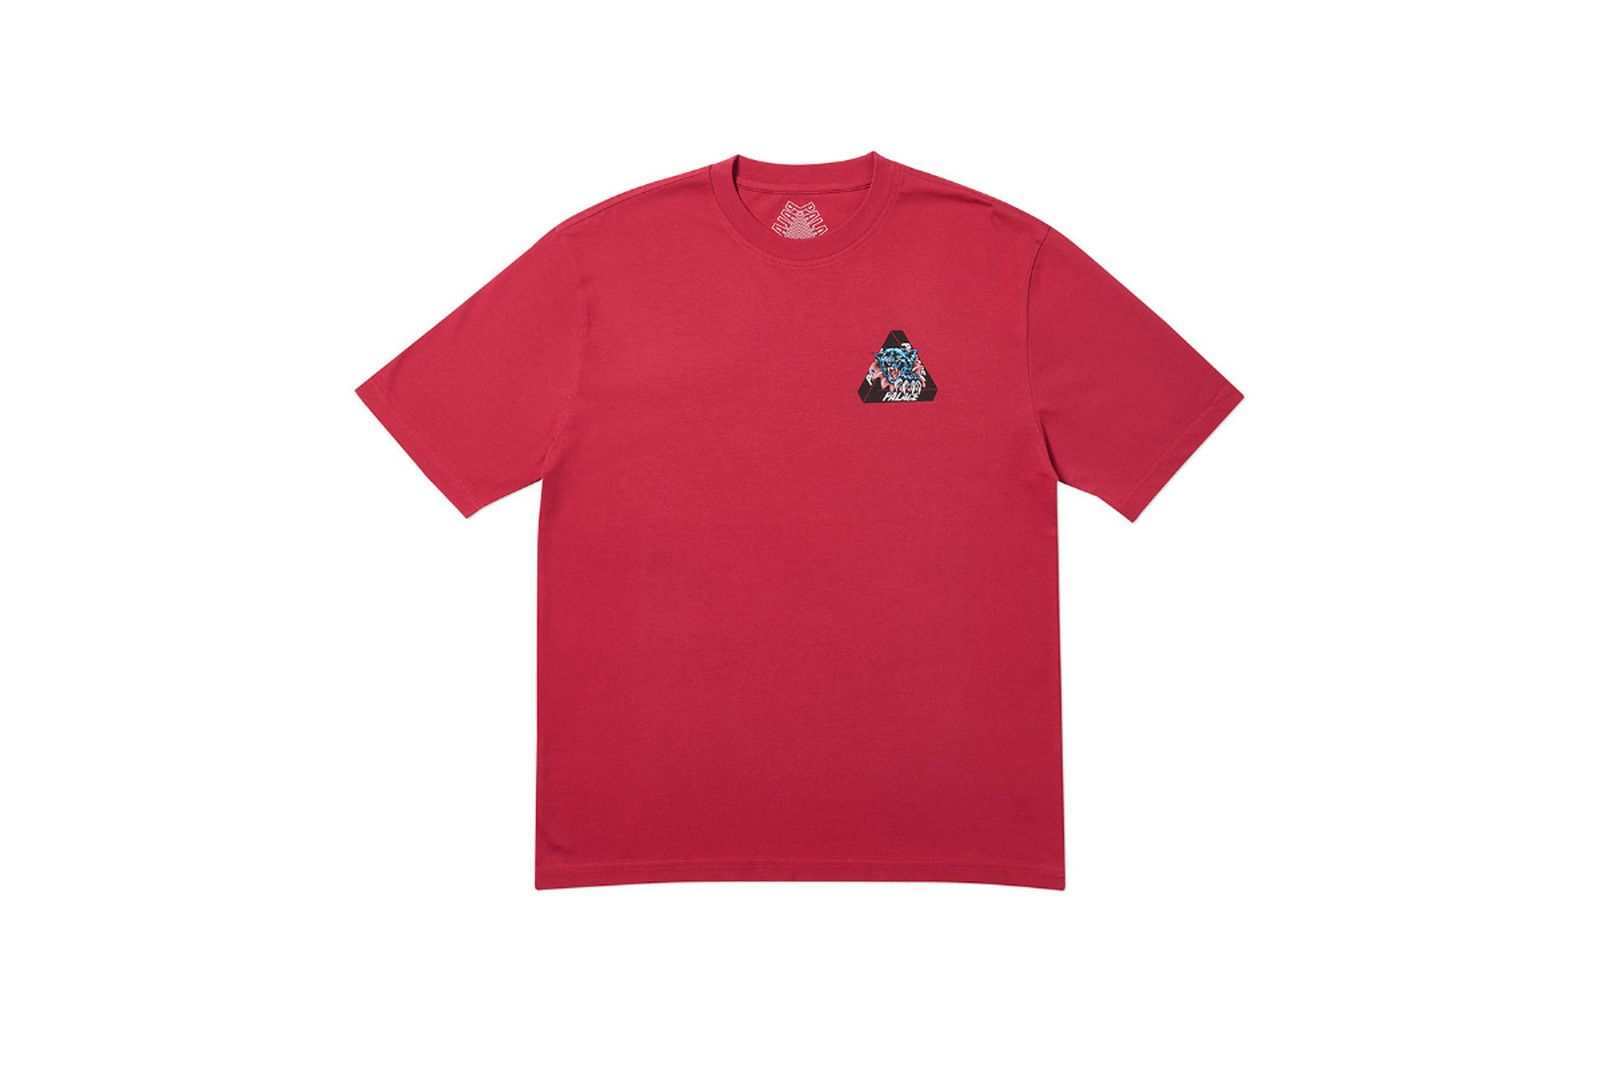 Palace 2019 Autumn T Shirt Ripped dark red front